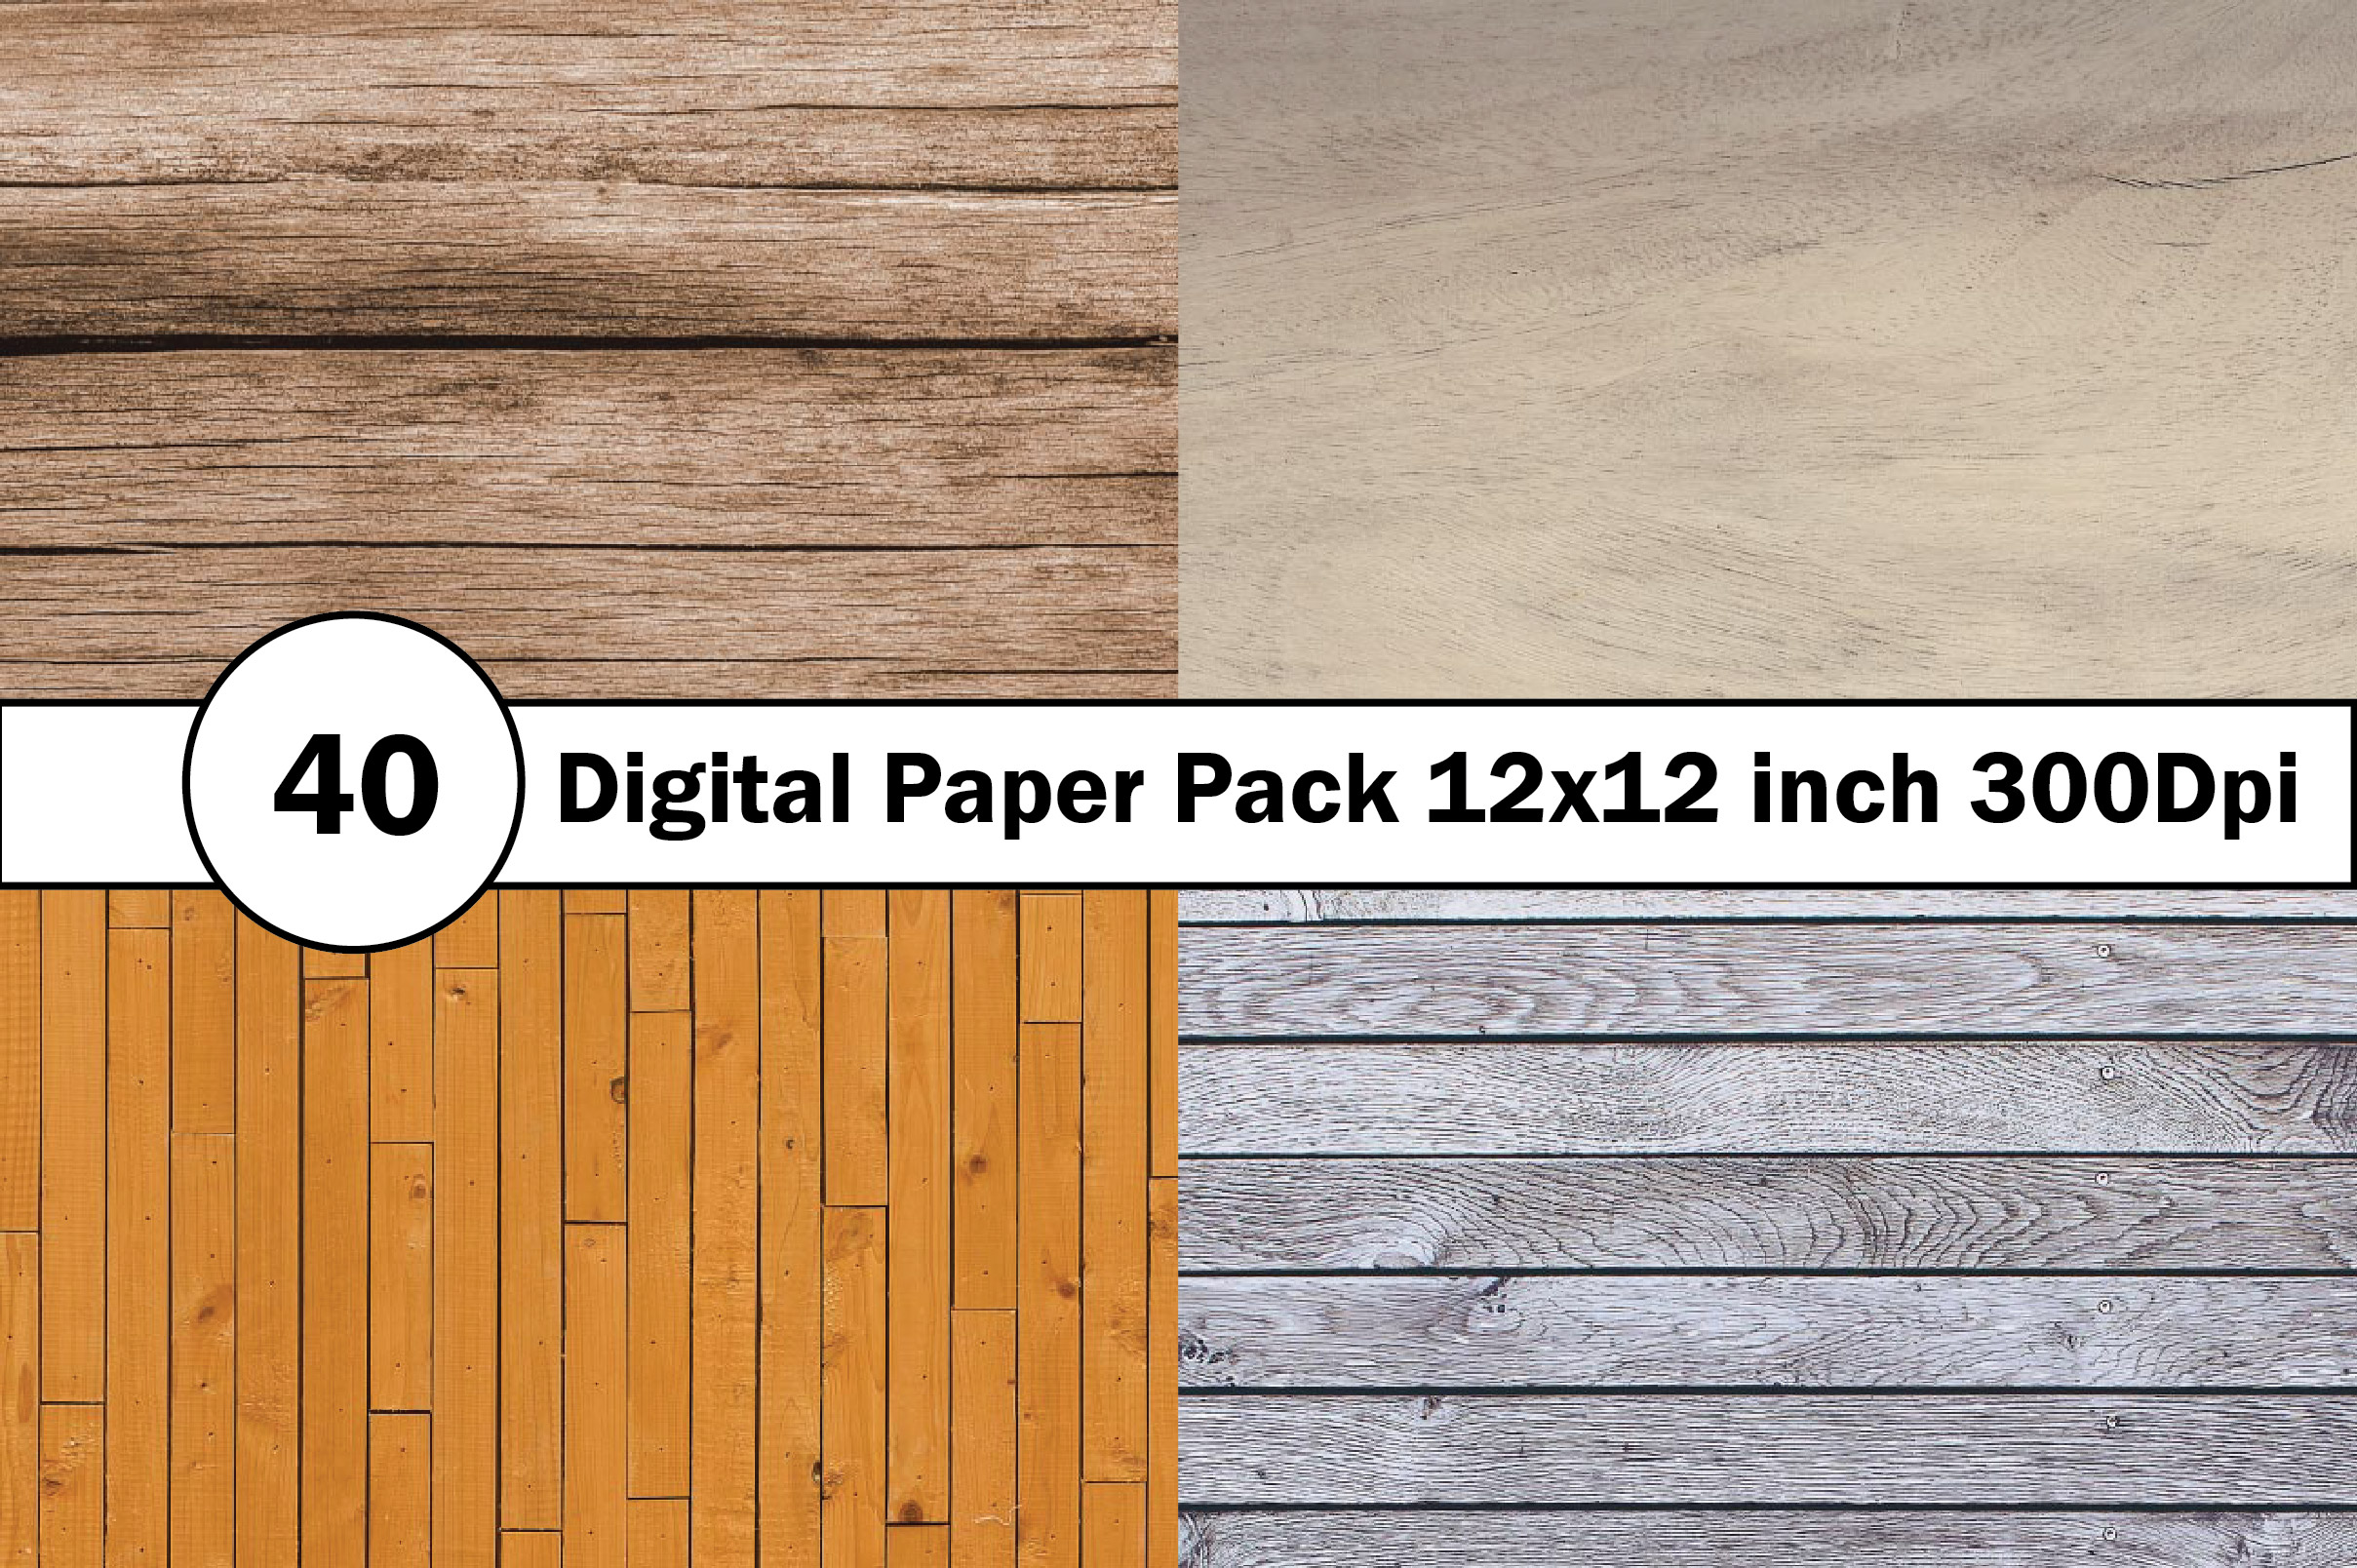 40 Digital Paper Pack 12x12 inch 300 Dpi example image 3